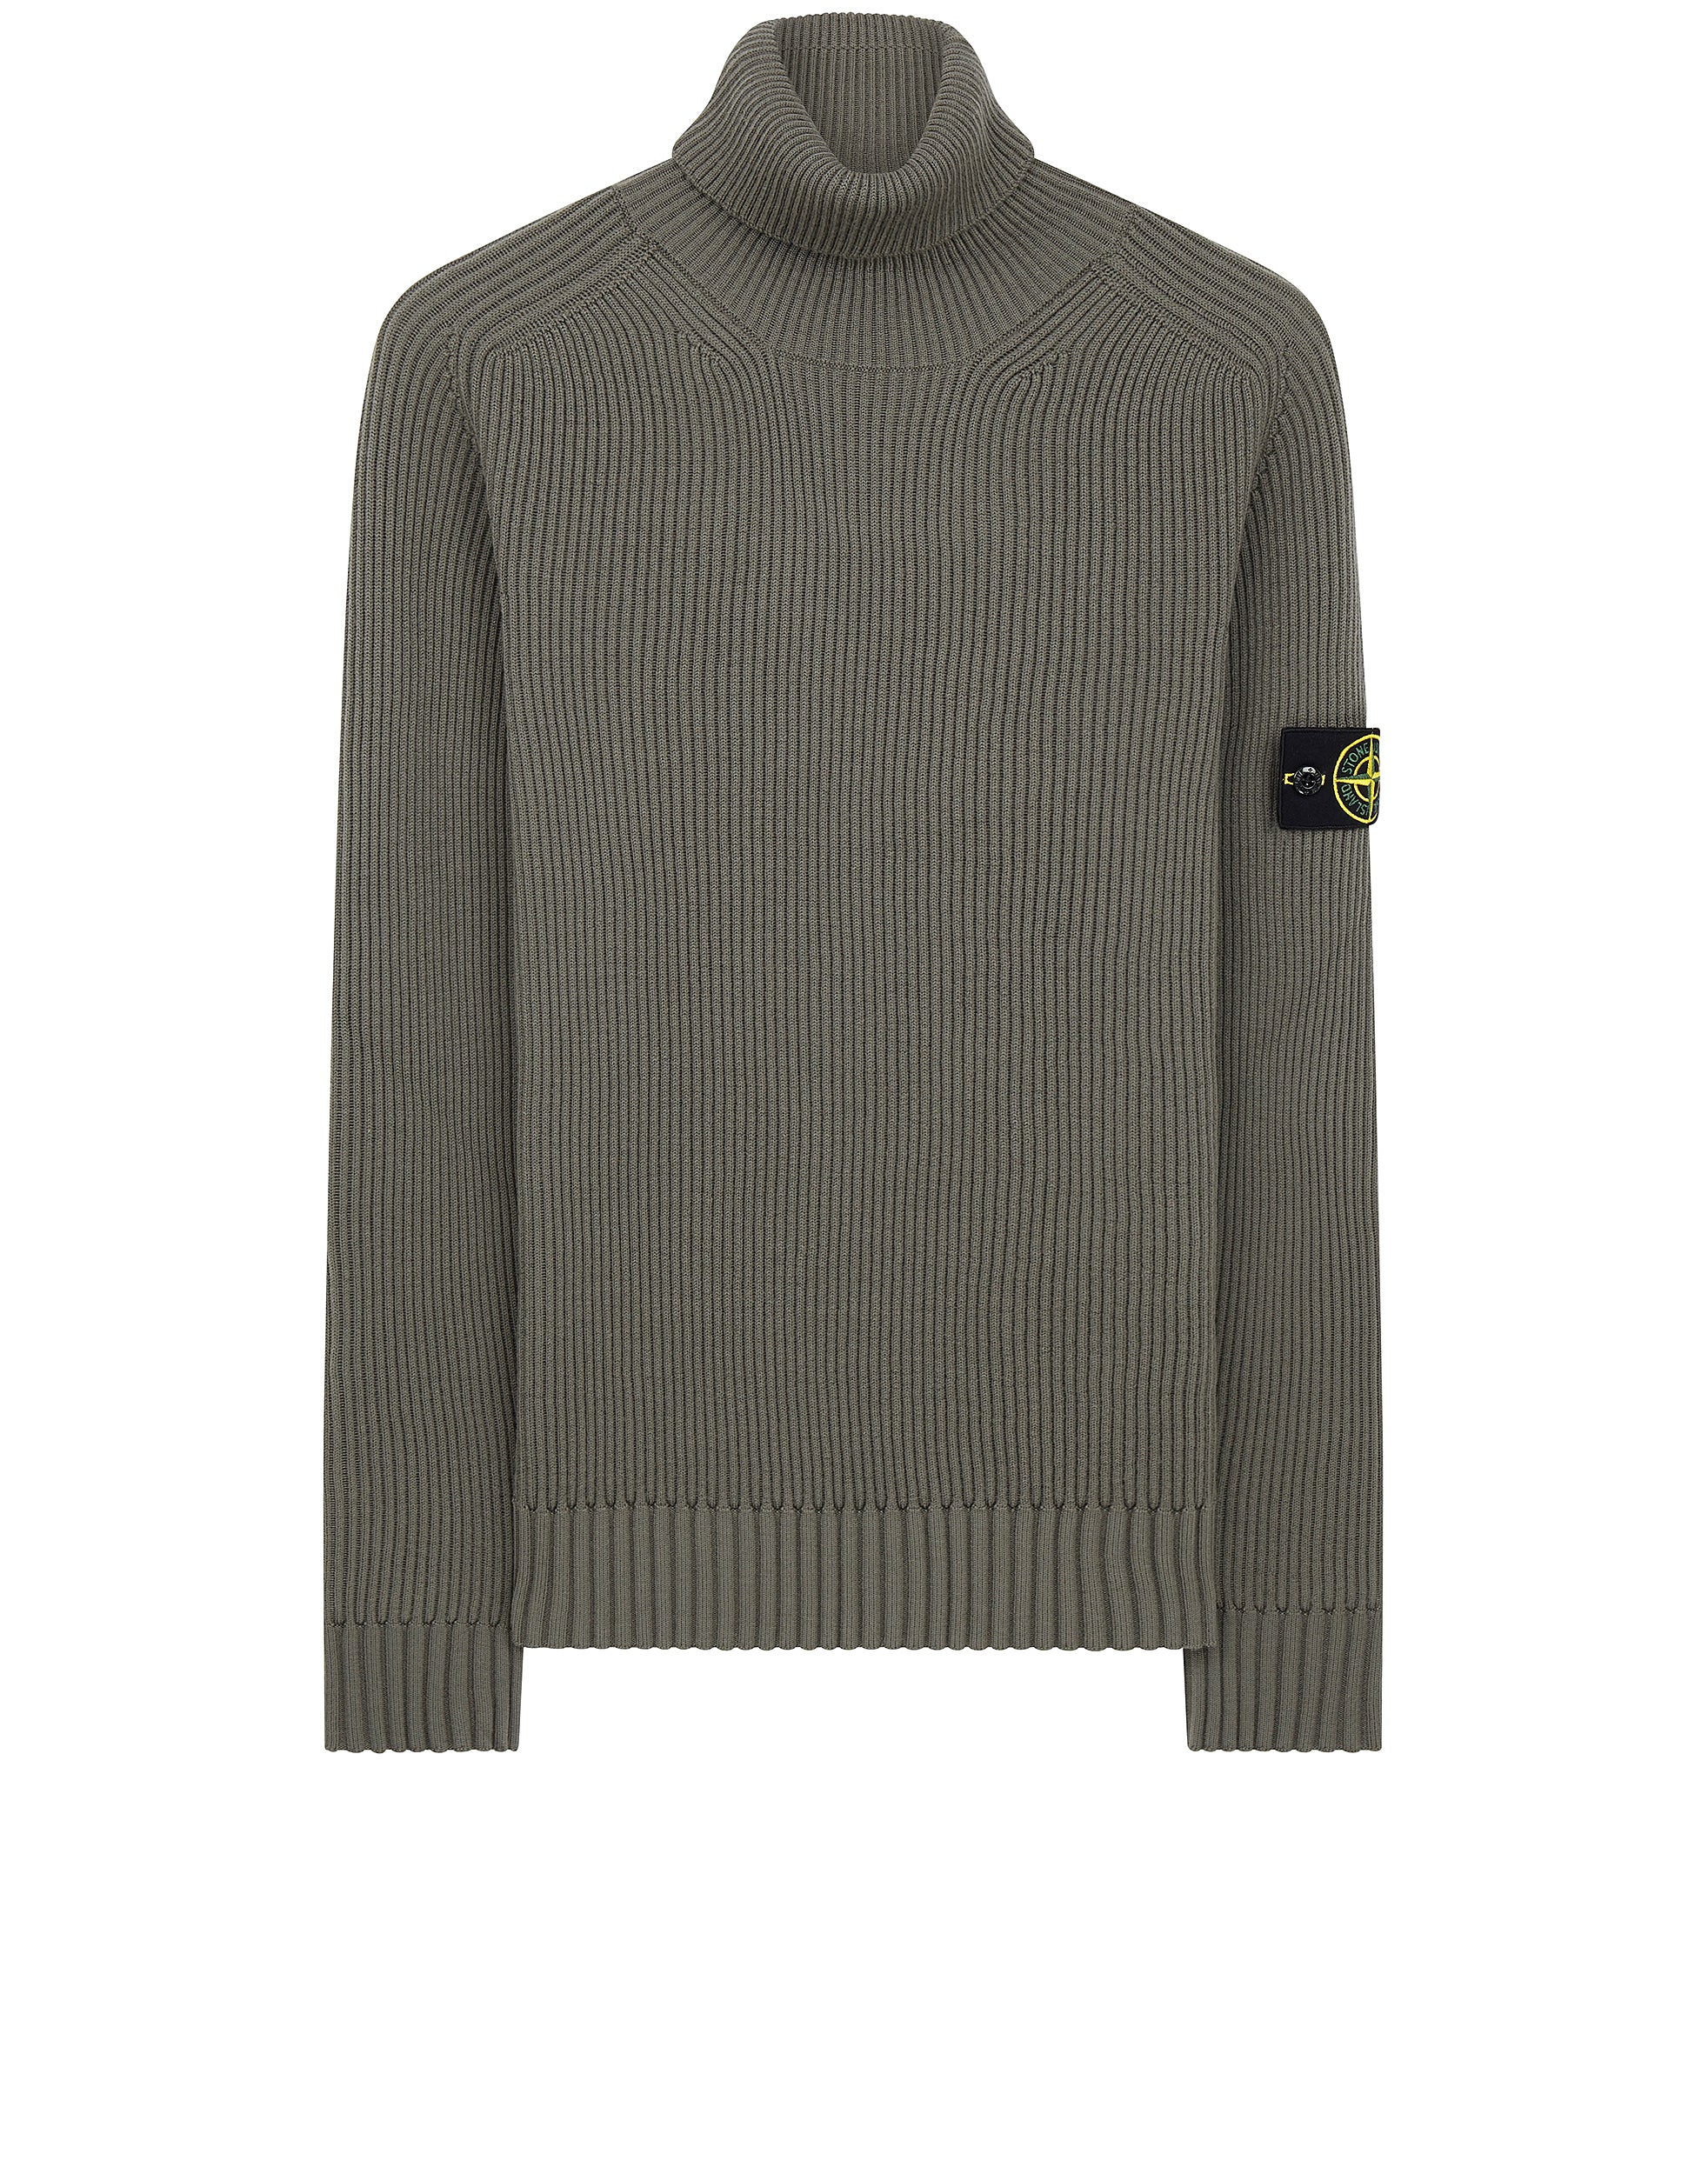 535C2 Turtleneck Knit in Olive